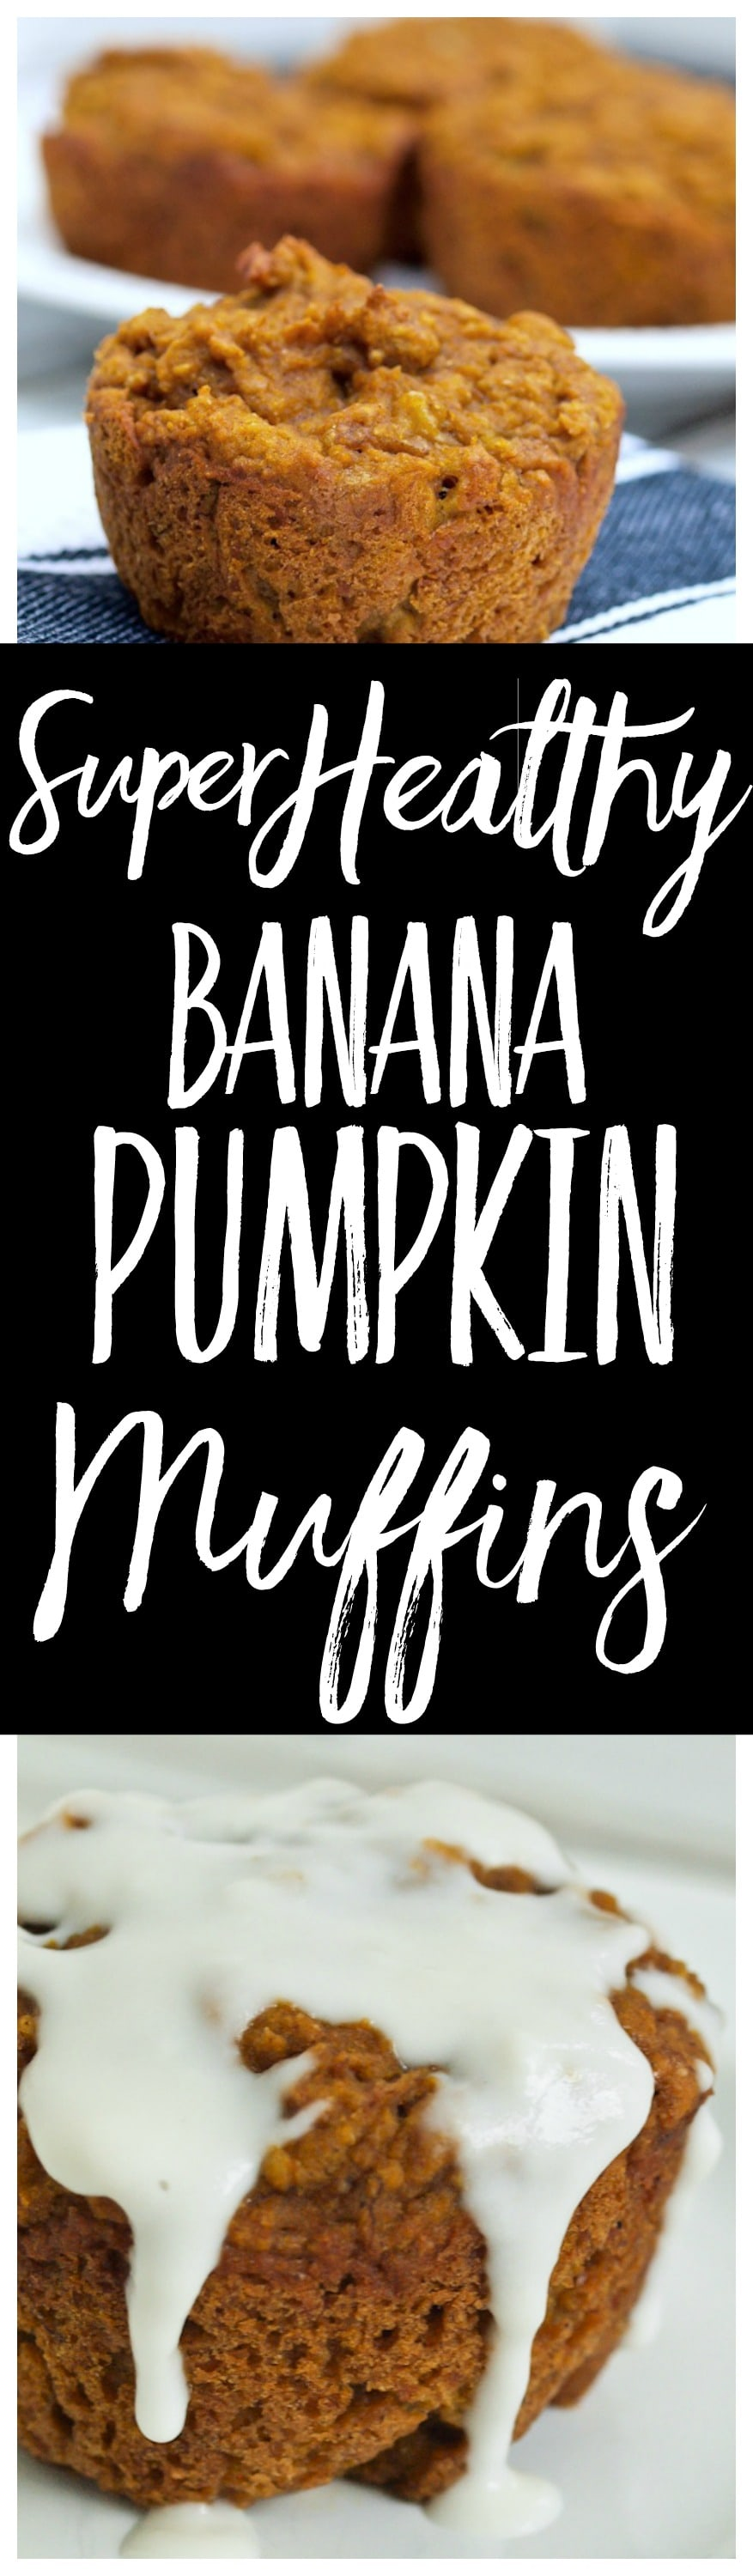 Super Healthy Banana Pumpkin Muffin Recipe! These are low sugar and bursting with lovely pumpkin spice flavor. A great healthy breakfast idea the whole family LOVES.